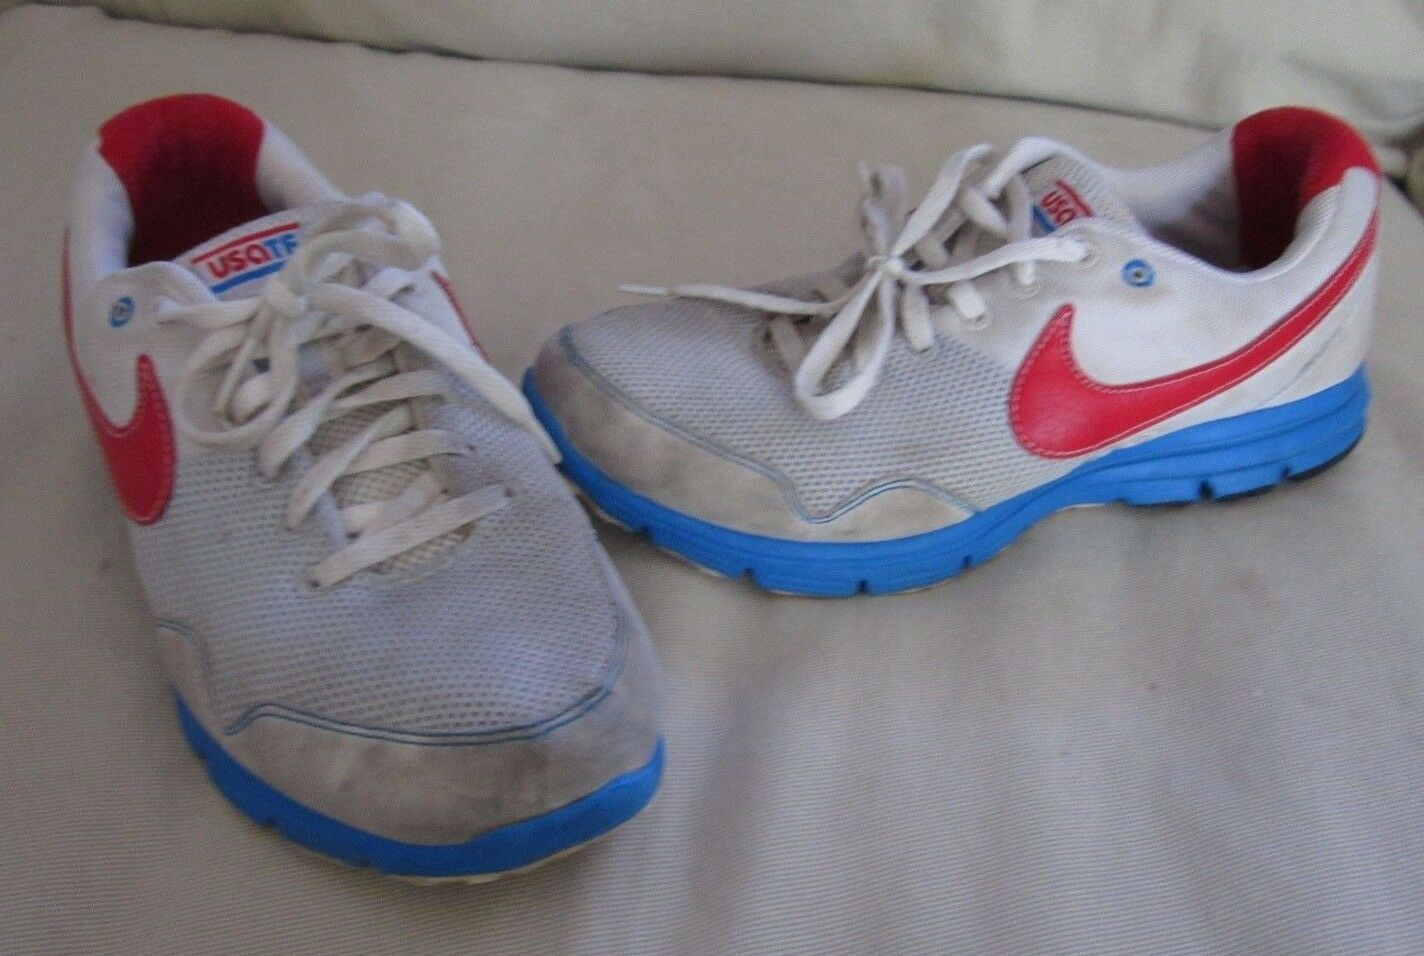 Nike Lunarfly + USATF Track & Field Running Shoes Sneakers Distressed Used 2010